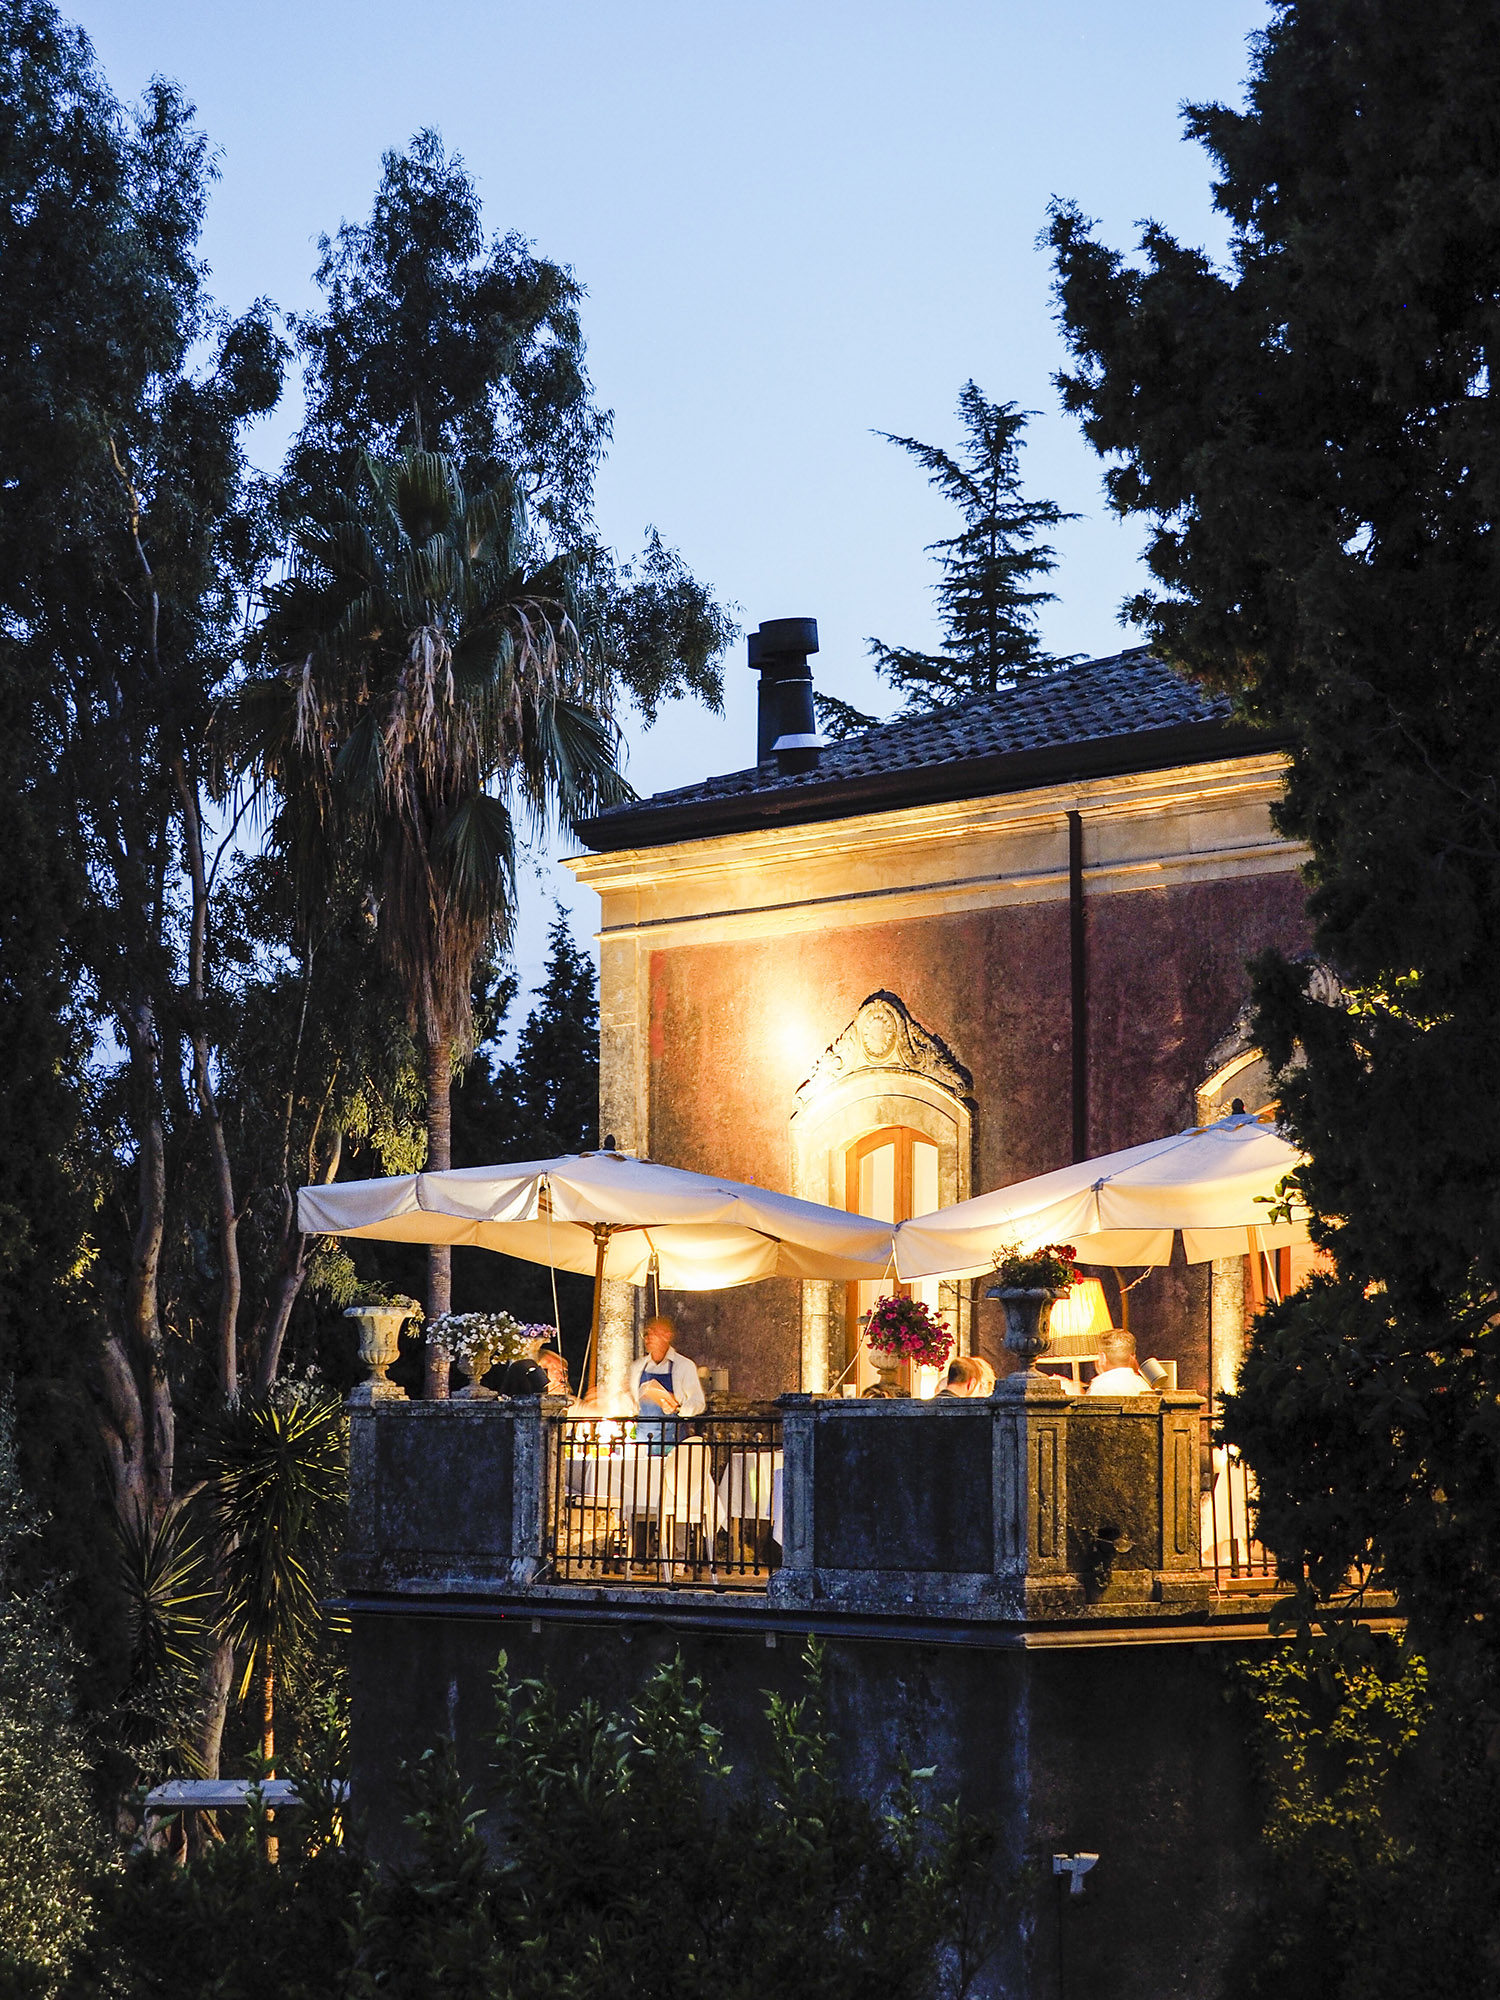 Monaci delle Terre Nere ⏤ Living by the Pulse of Mount Etna on Perfect Local Day by UNCOVR Travel